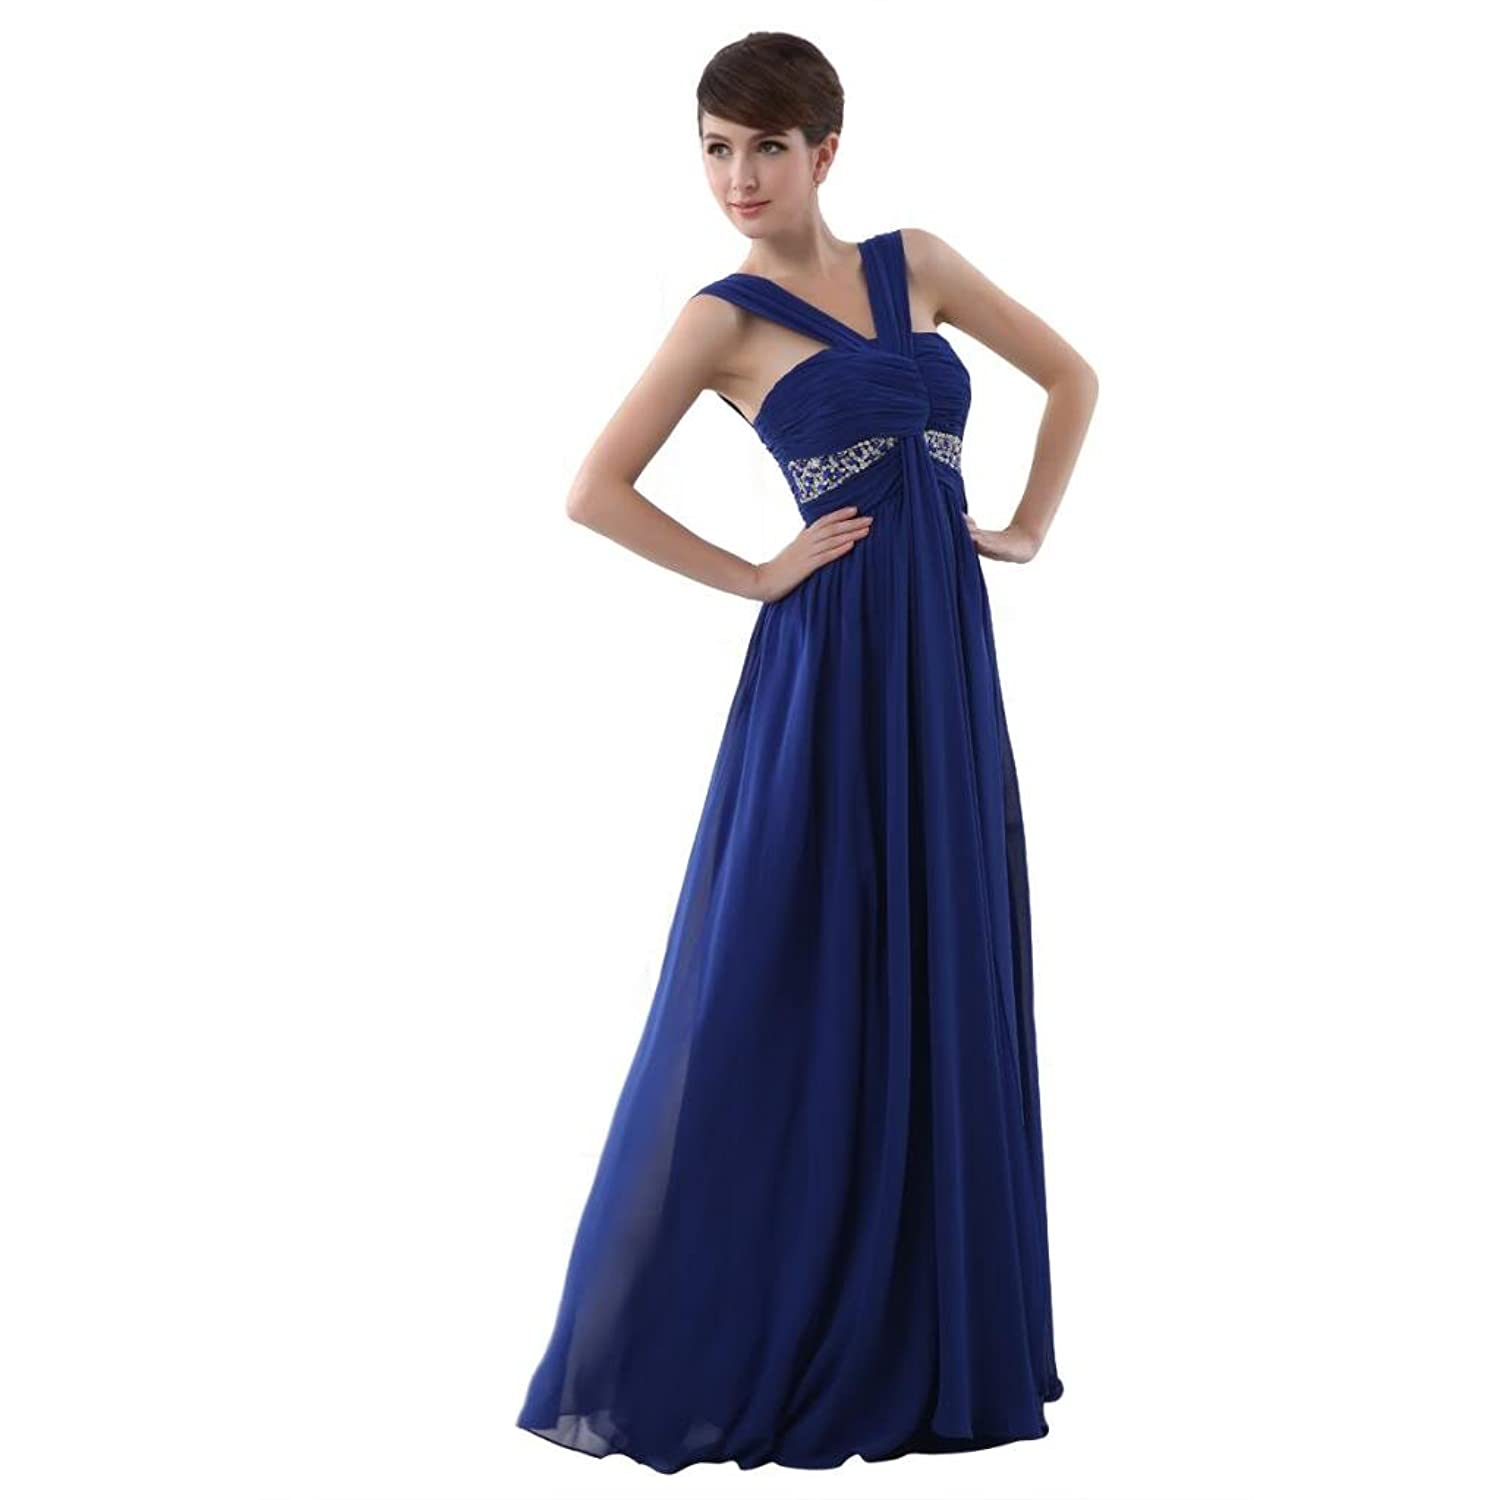 Favebridal Women's Pleated Empire Line Birdemaid Prom Dress